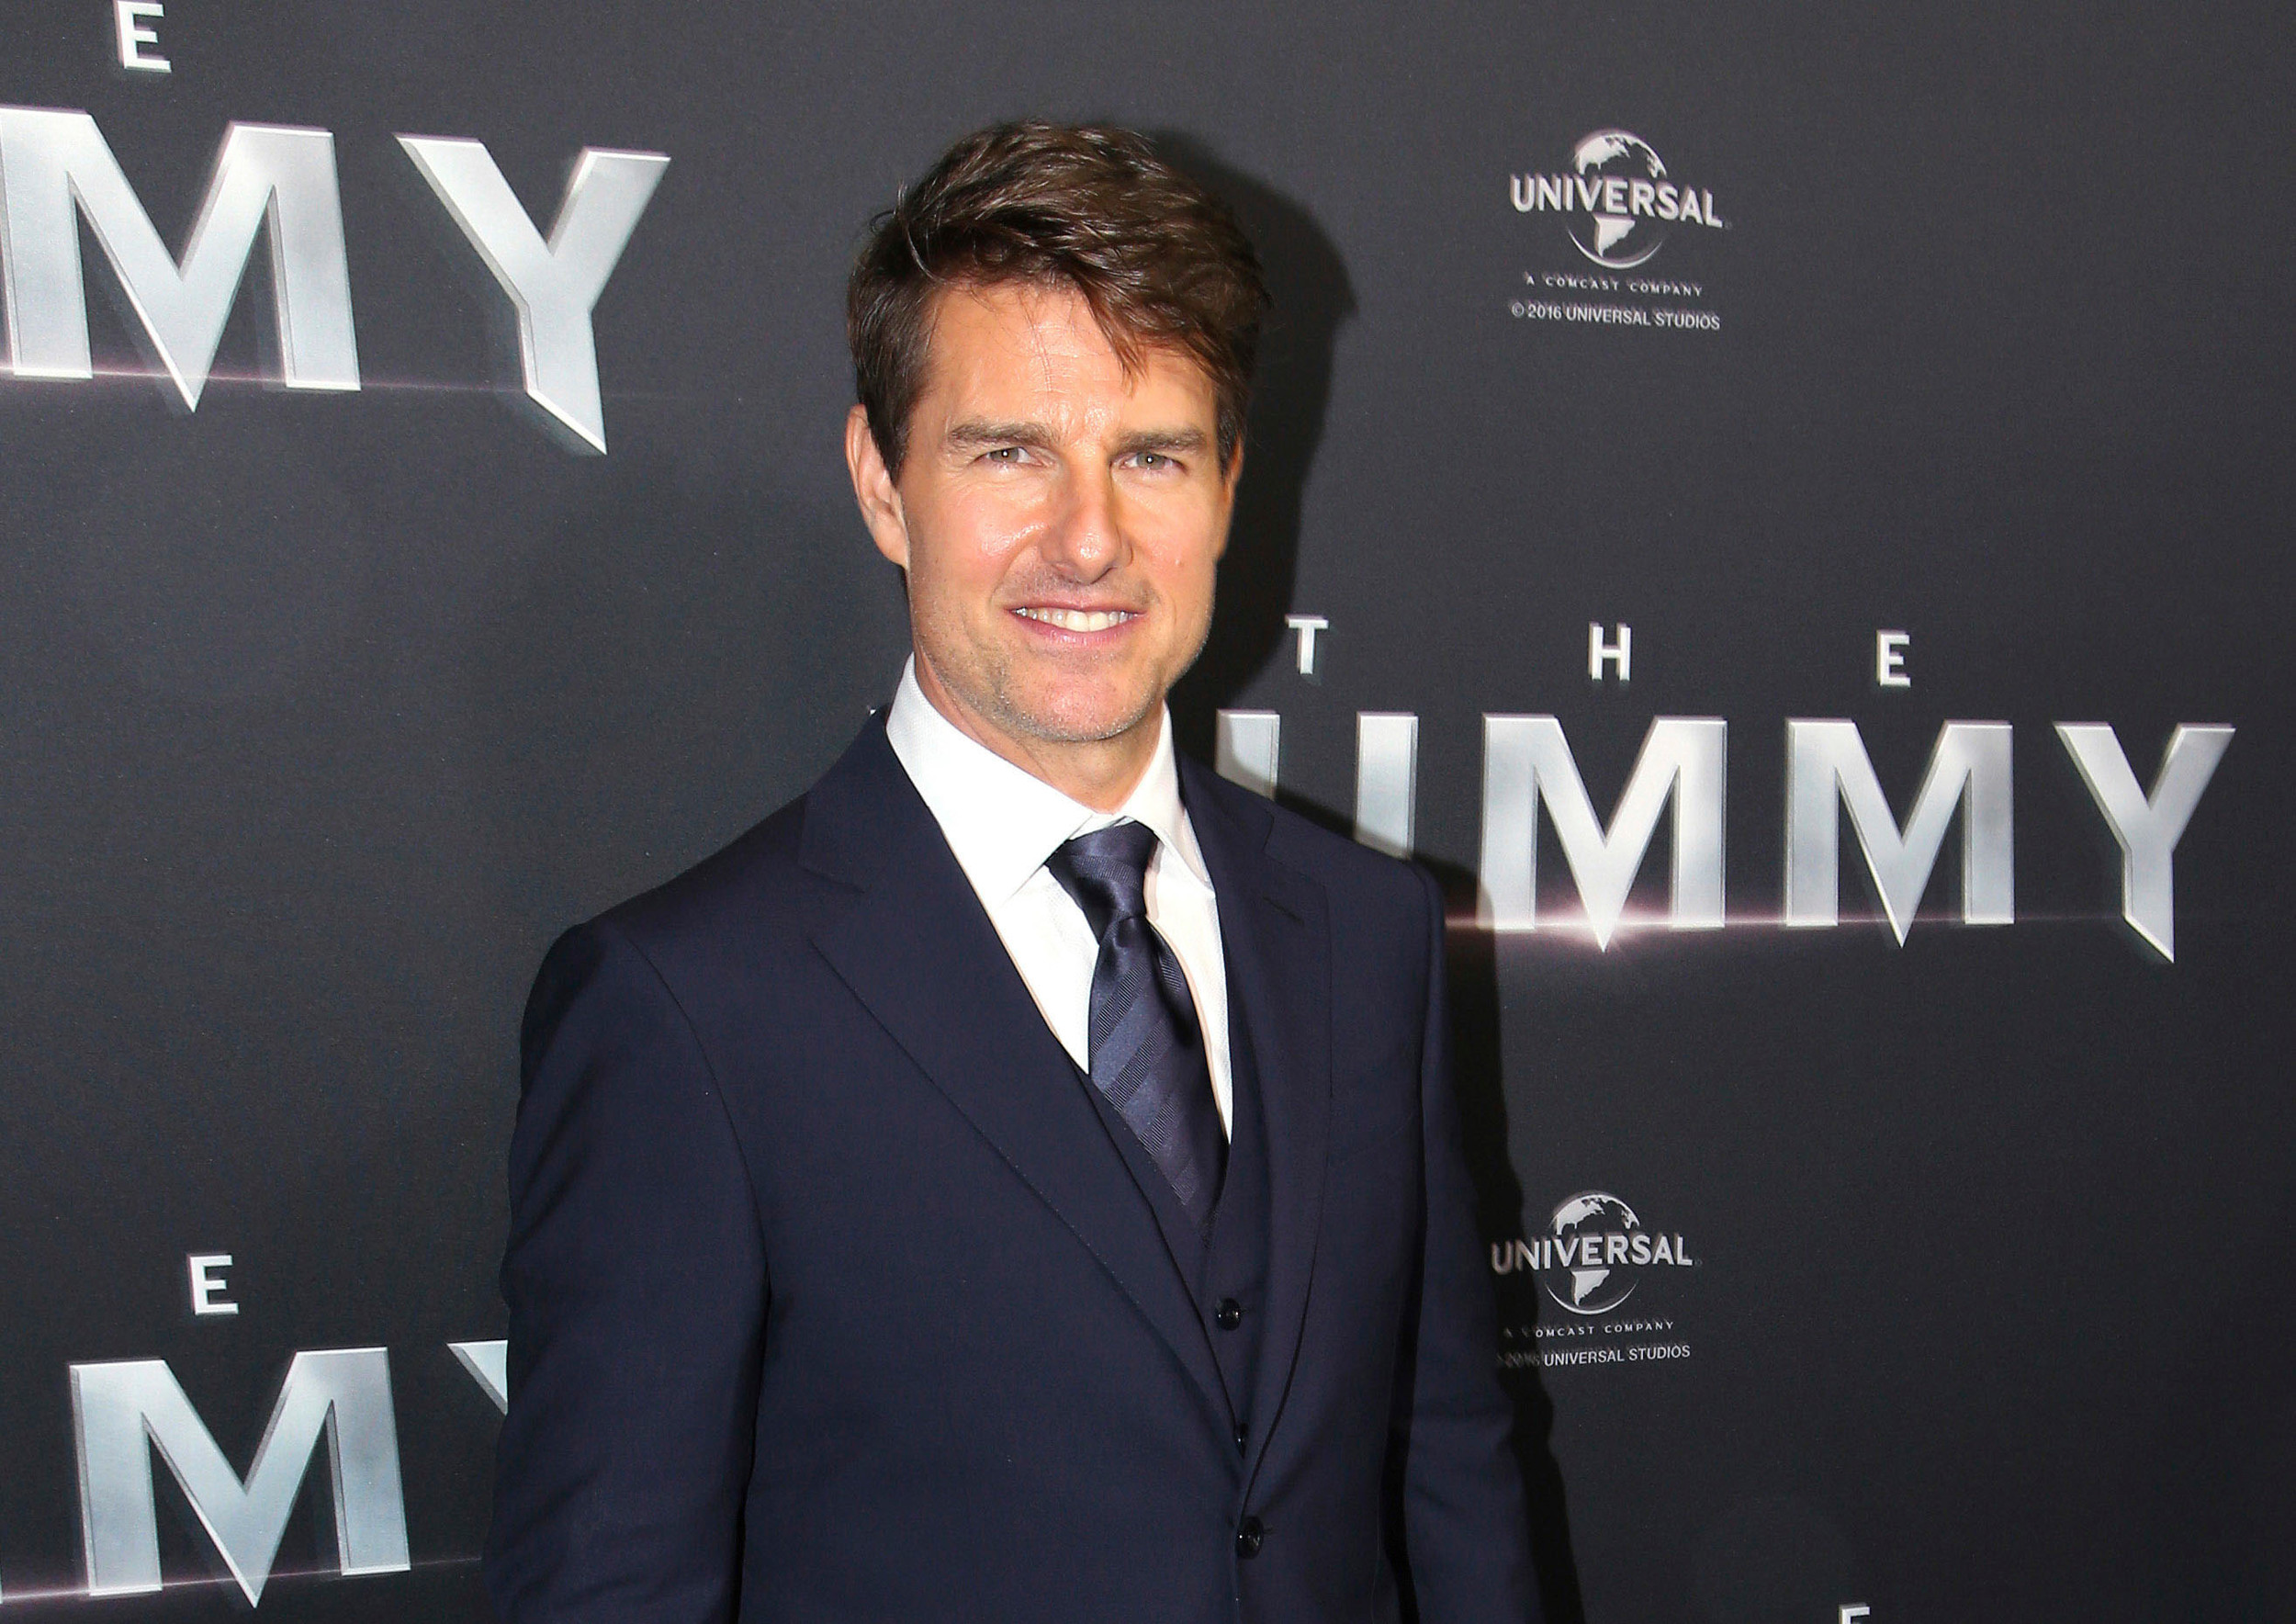 Tom Cruise confirms 'Top Gun 2' is a go